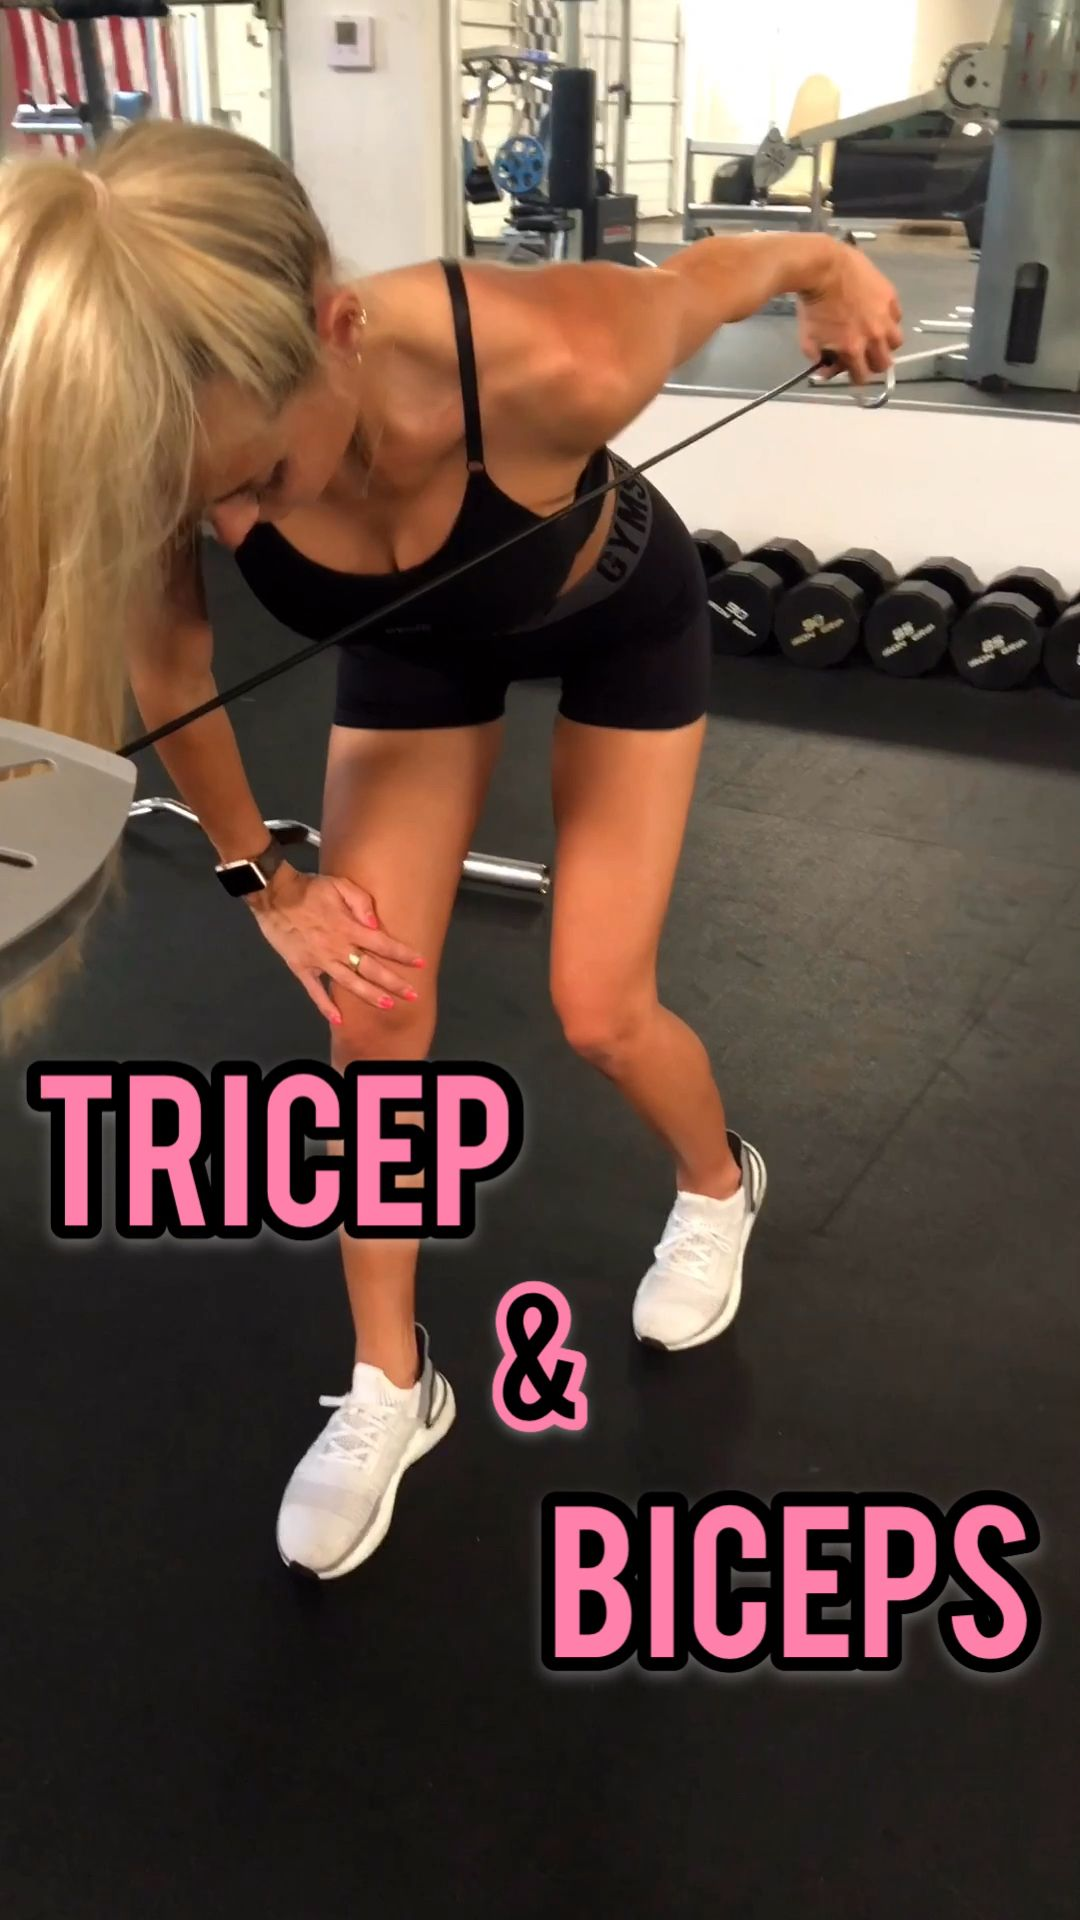 Bicep and Tricep Workout- Follow @ambrymehr IG for free workouts!